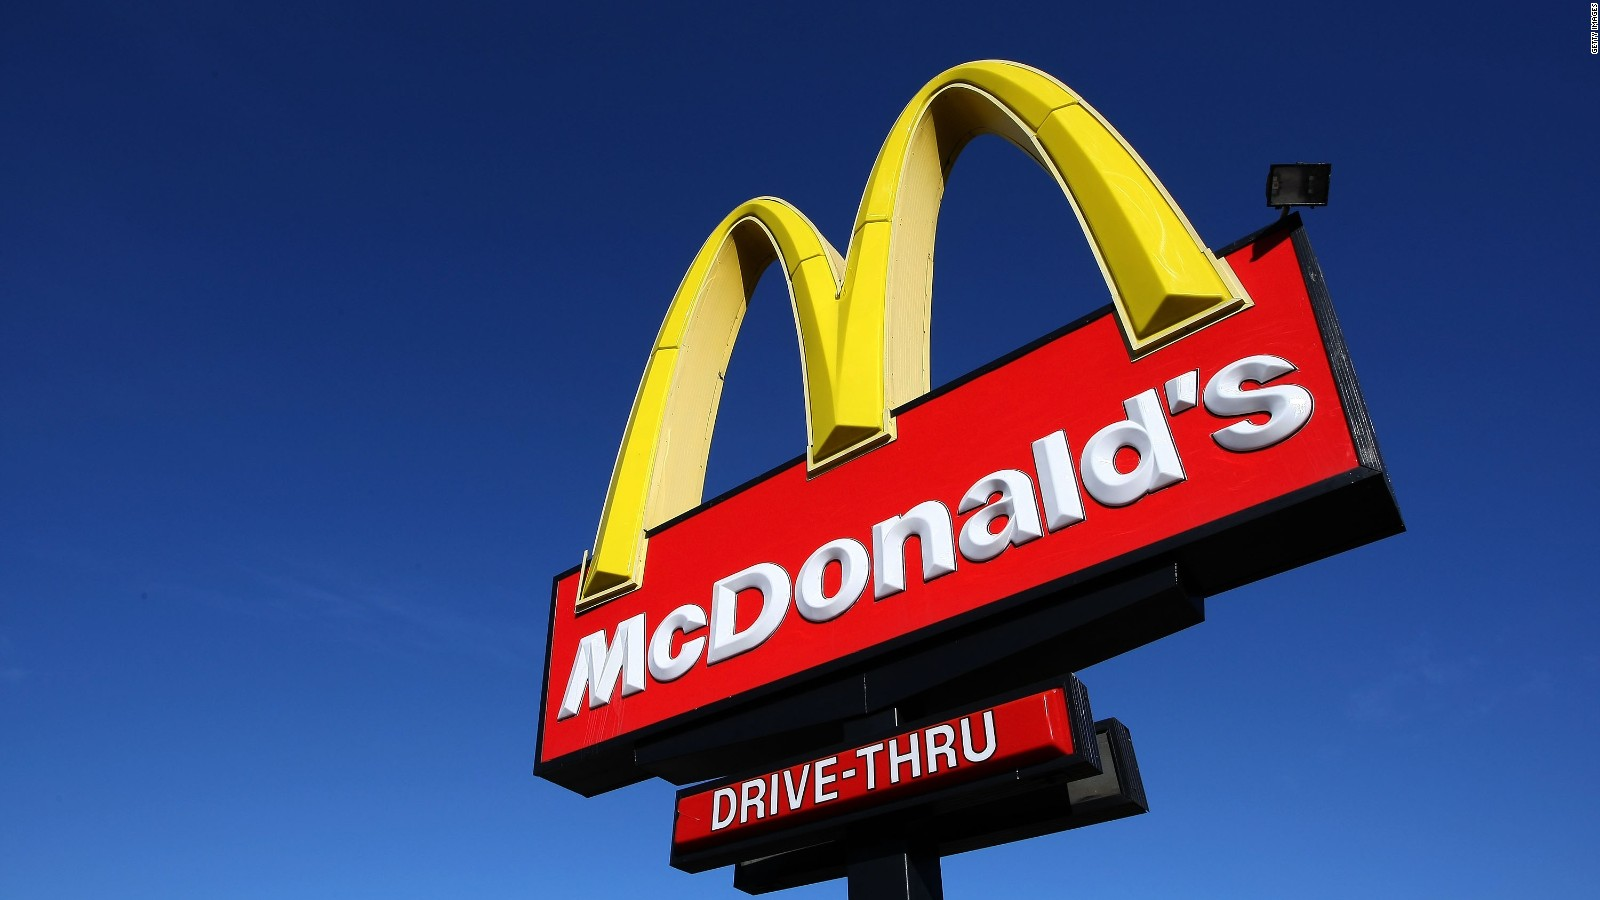 mcdonald s om 95% of mcdonald's restaurants offer happy meals with a fruit, vegetable or low-fat or dairy-free option.